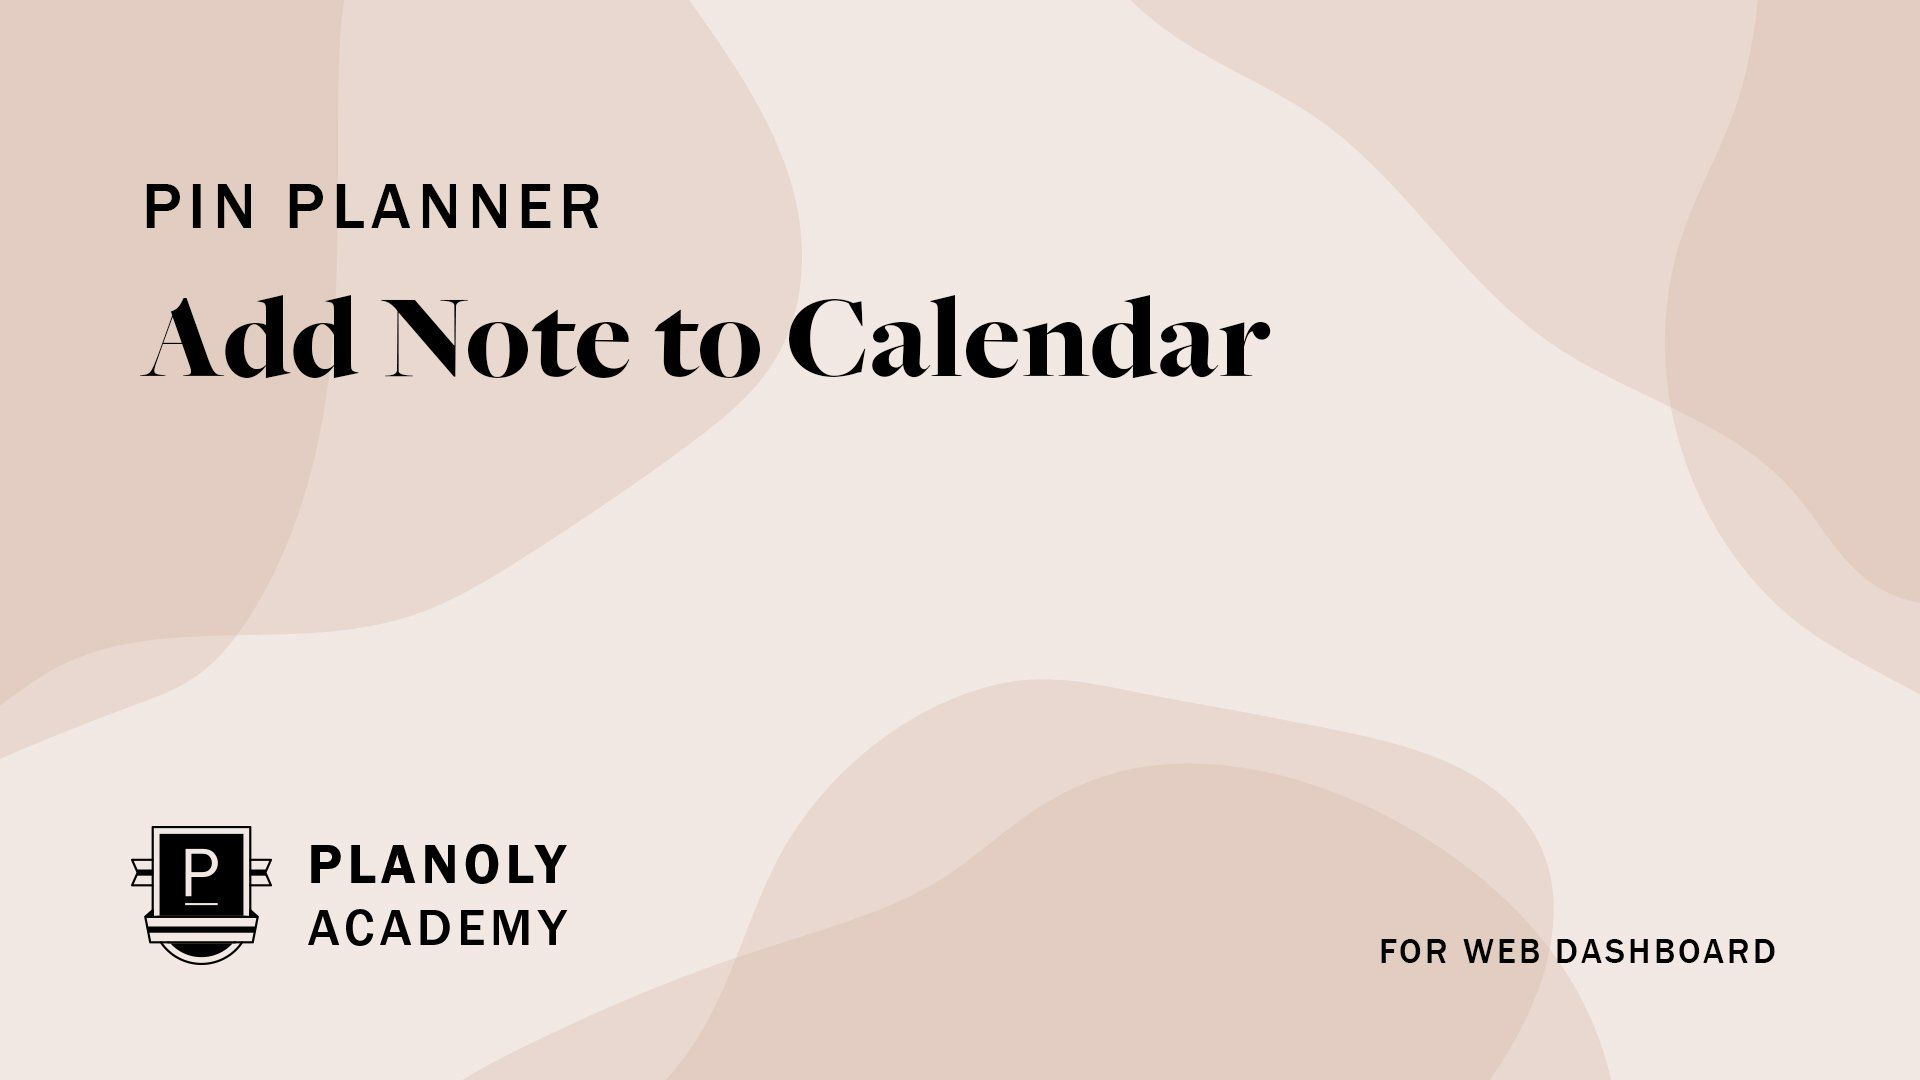 Add Note to Calendar